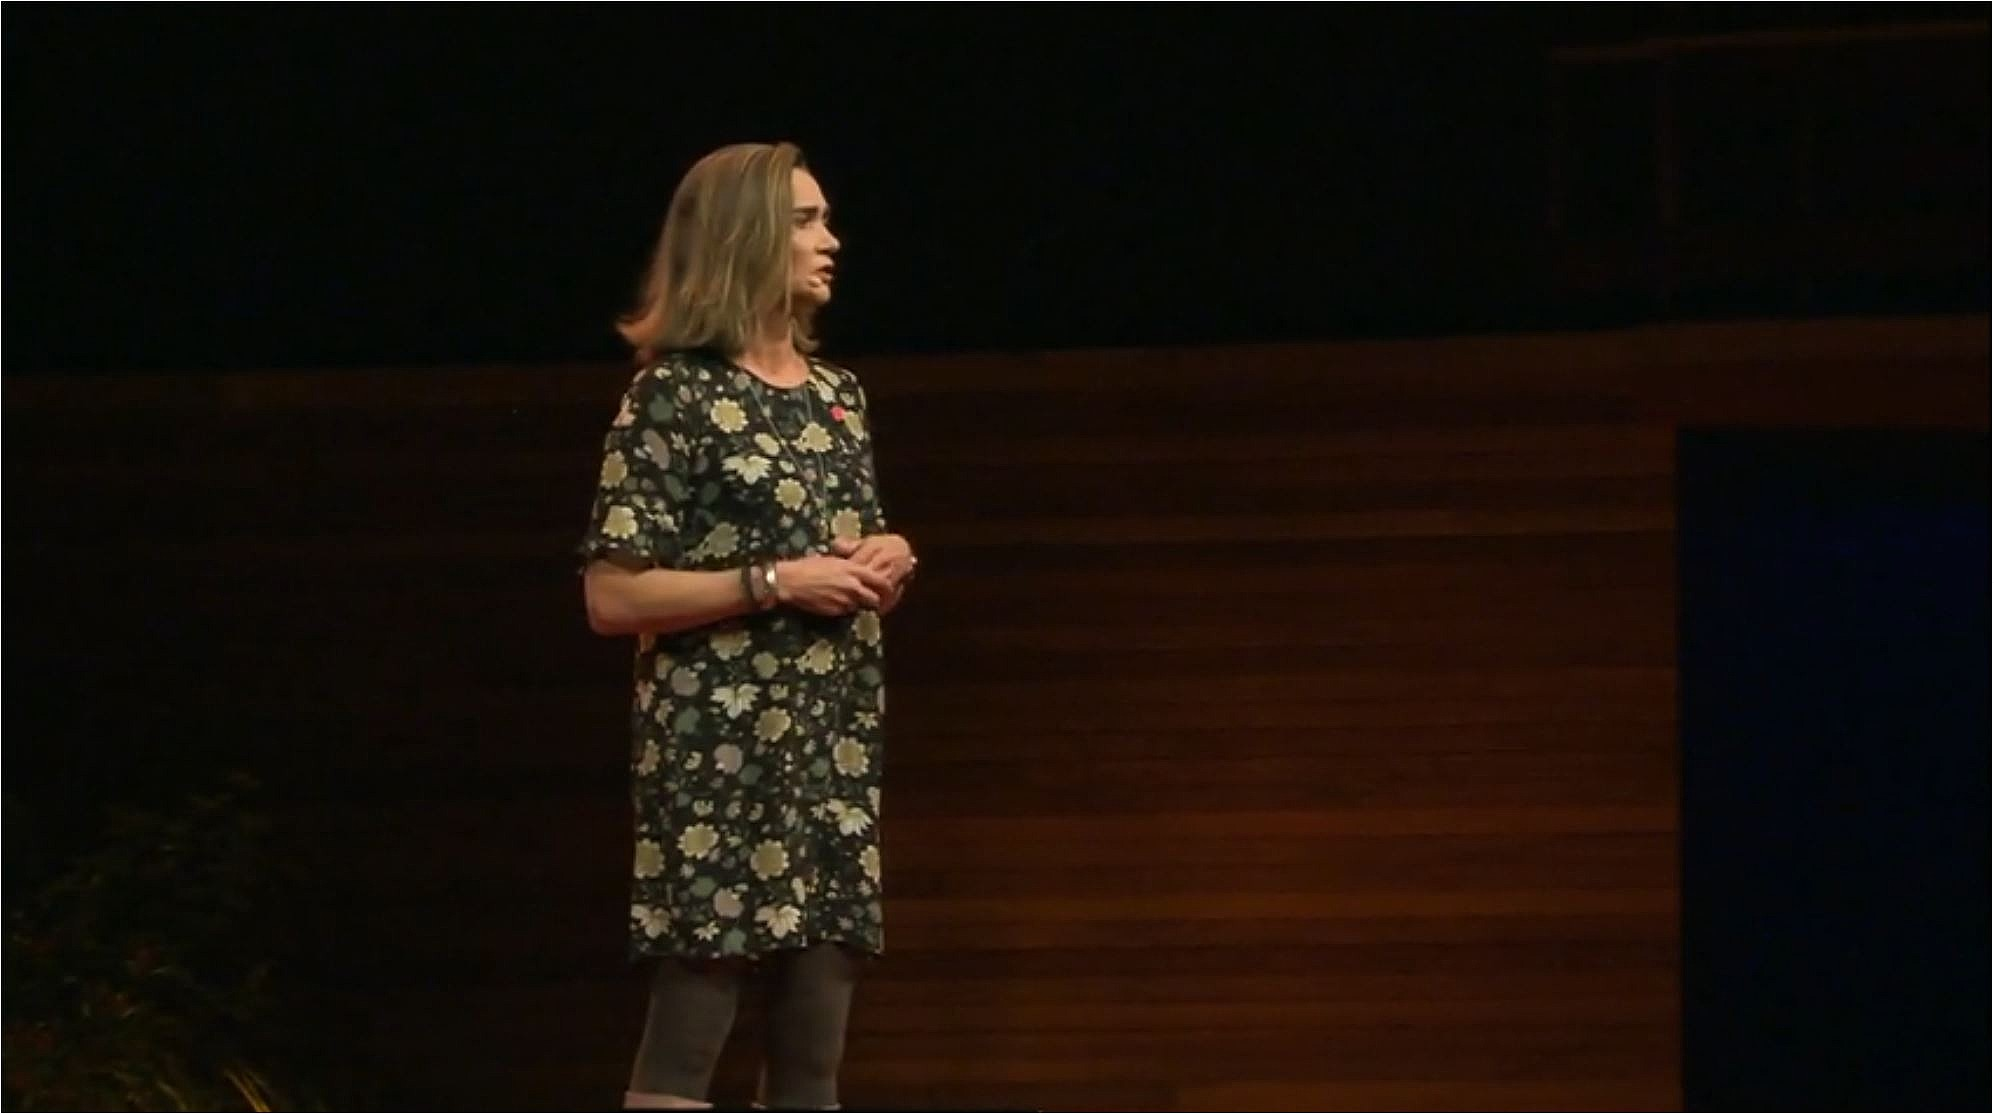 Dr. Lucy Hone on stage at TEDx Christchurch 2019.